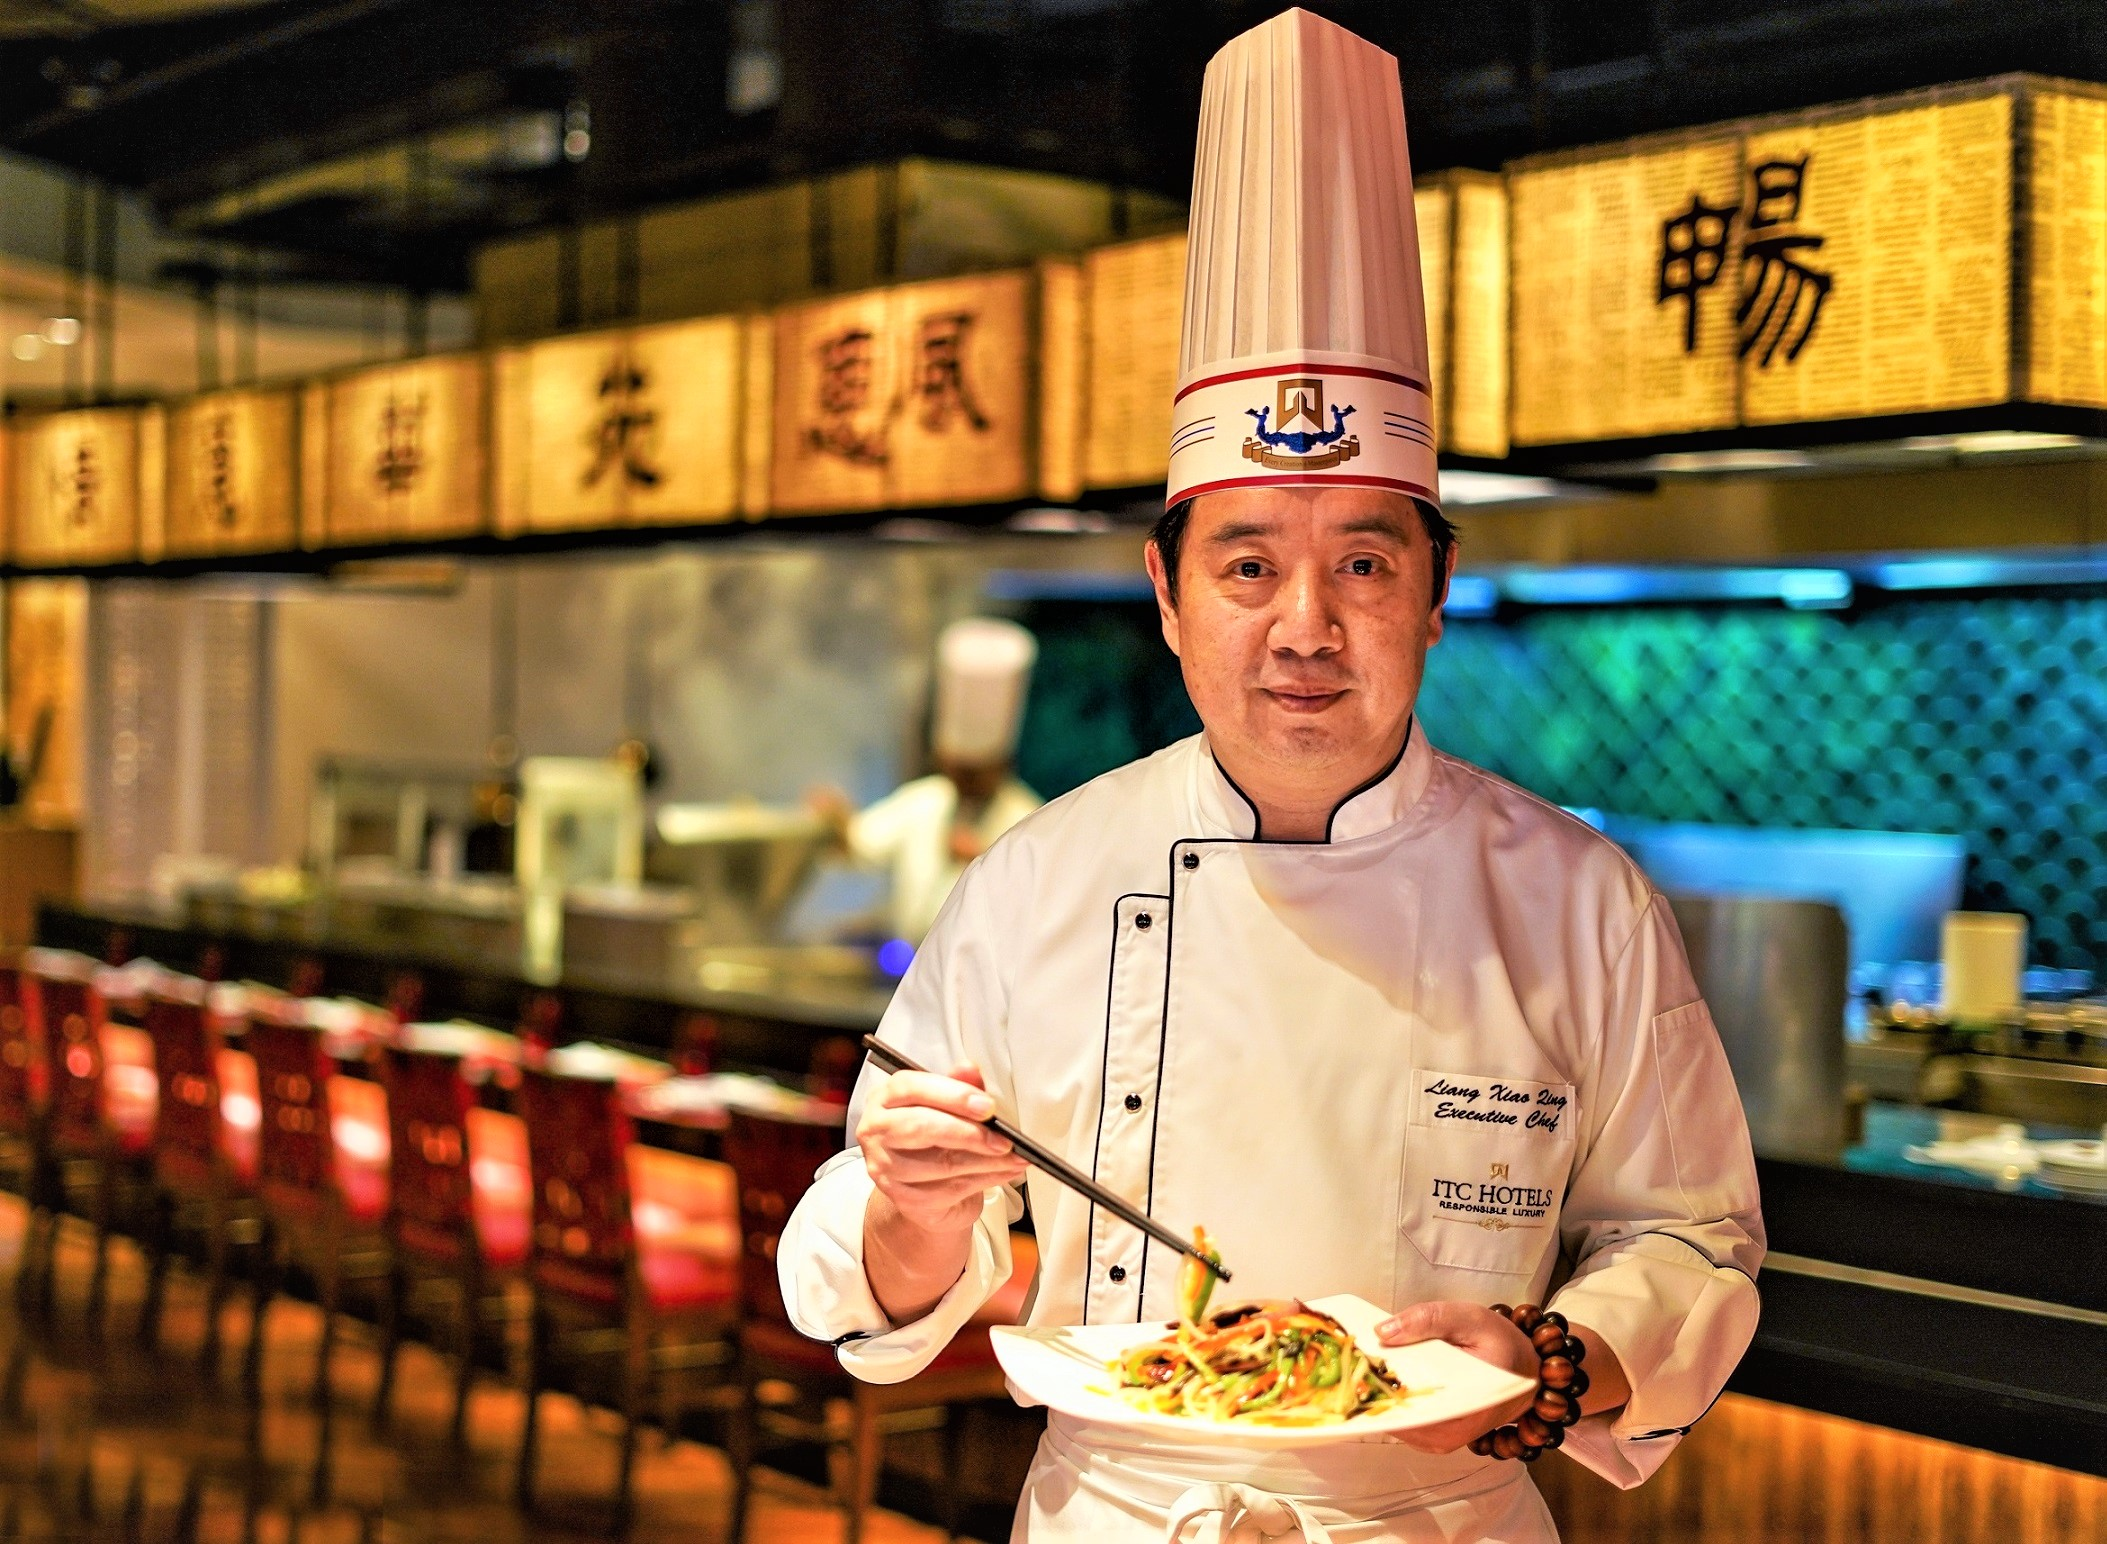 A-PAN-ASIAN-1-Chef-Liang-Xiao-Qing_Pan-Asian-ITC-Marath.jpg